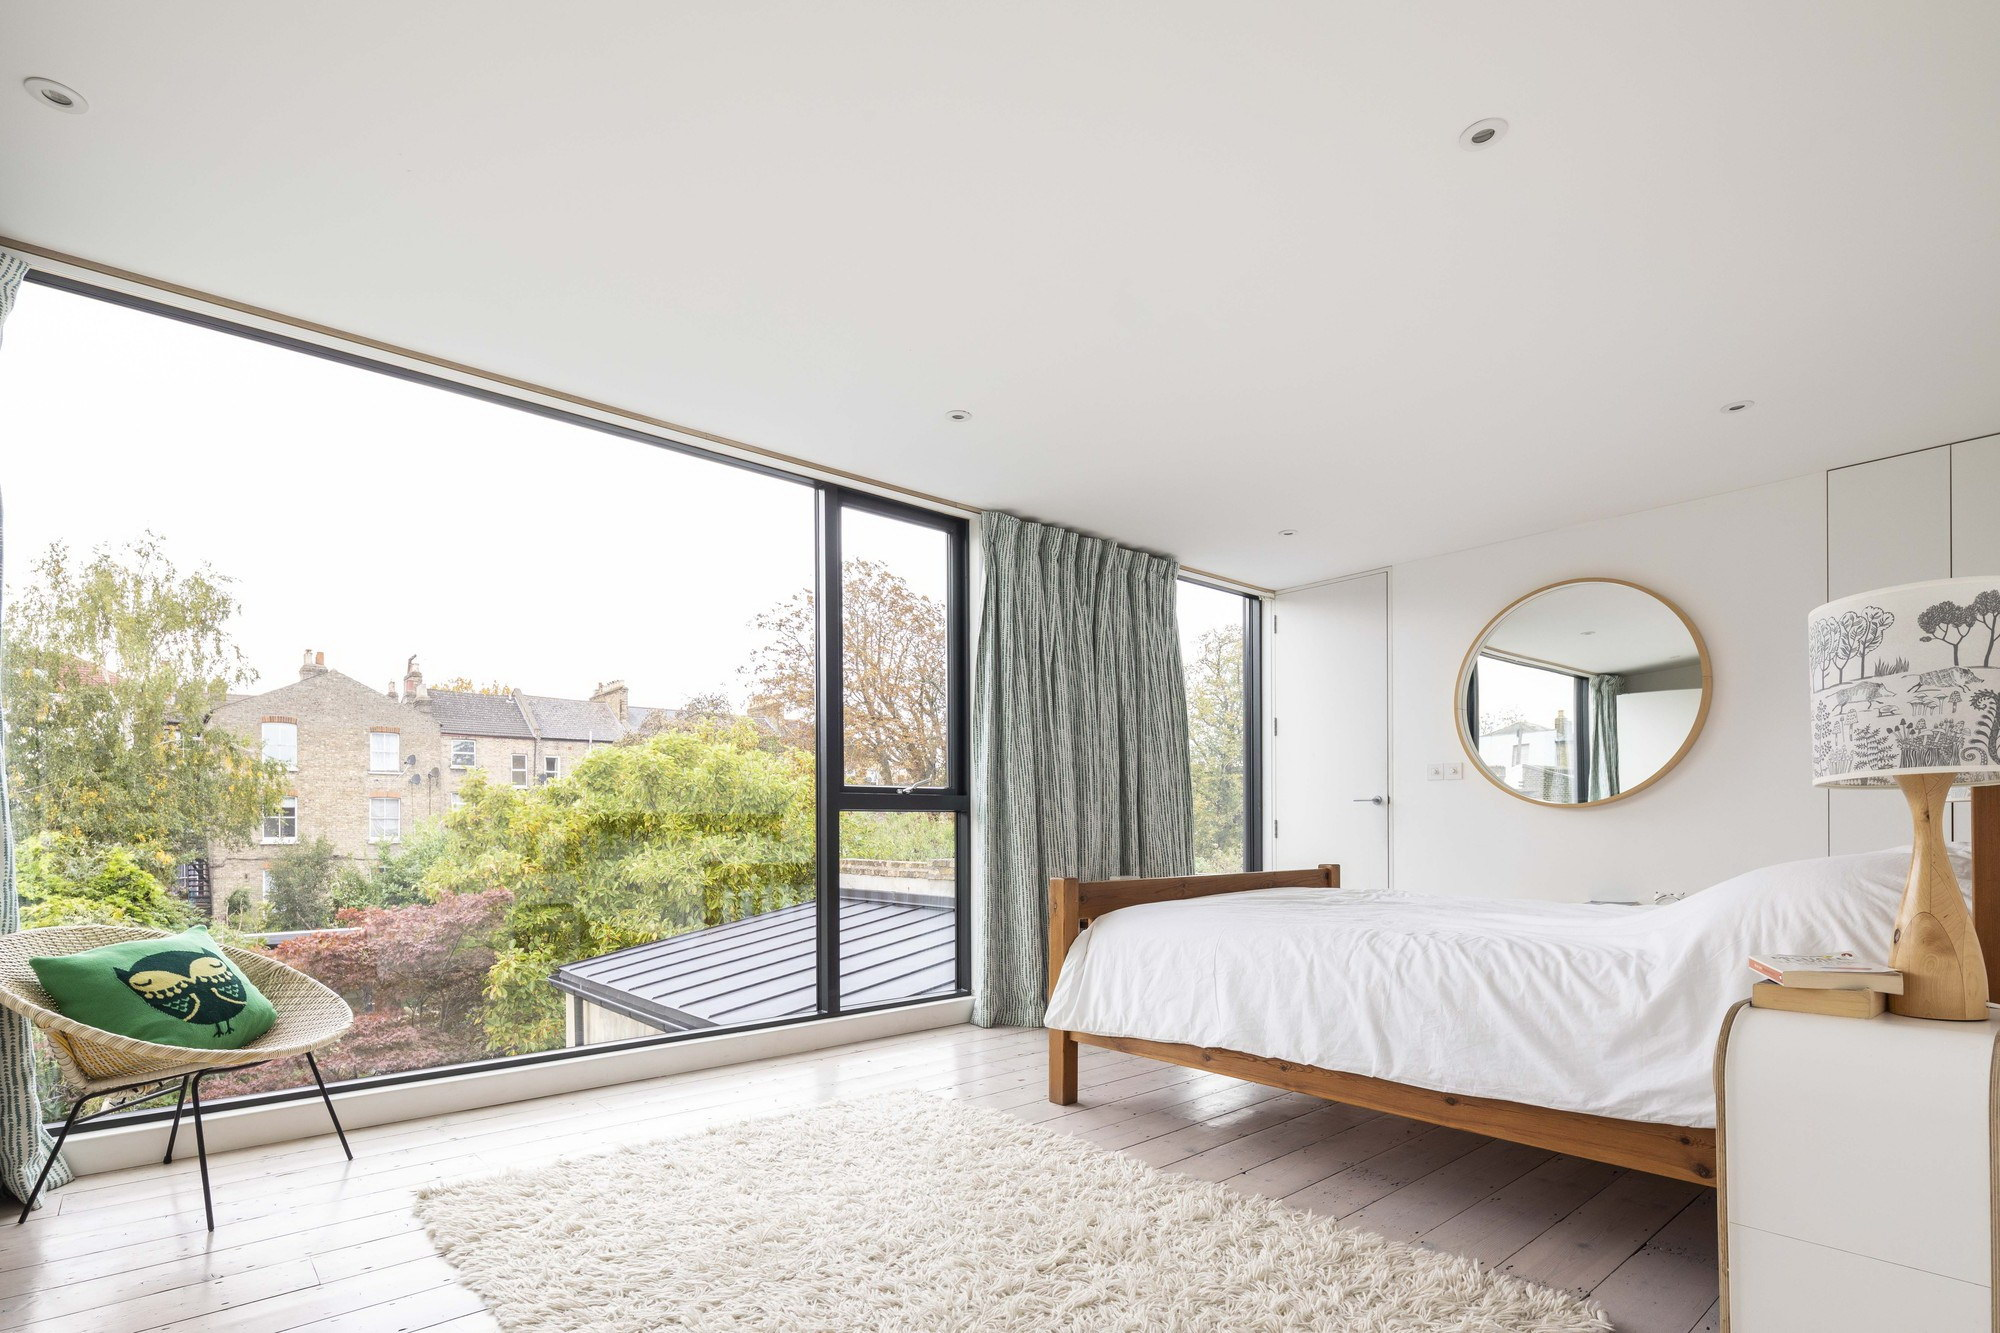 The Coach House | Terraced House Renovation by Studio 30 Architects